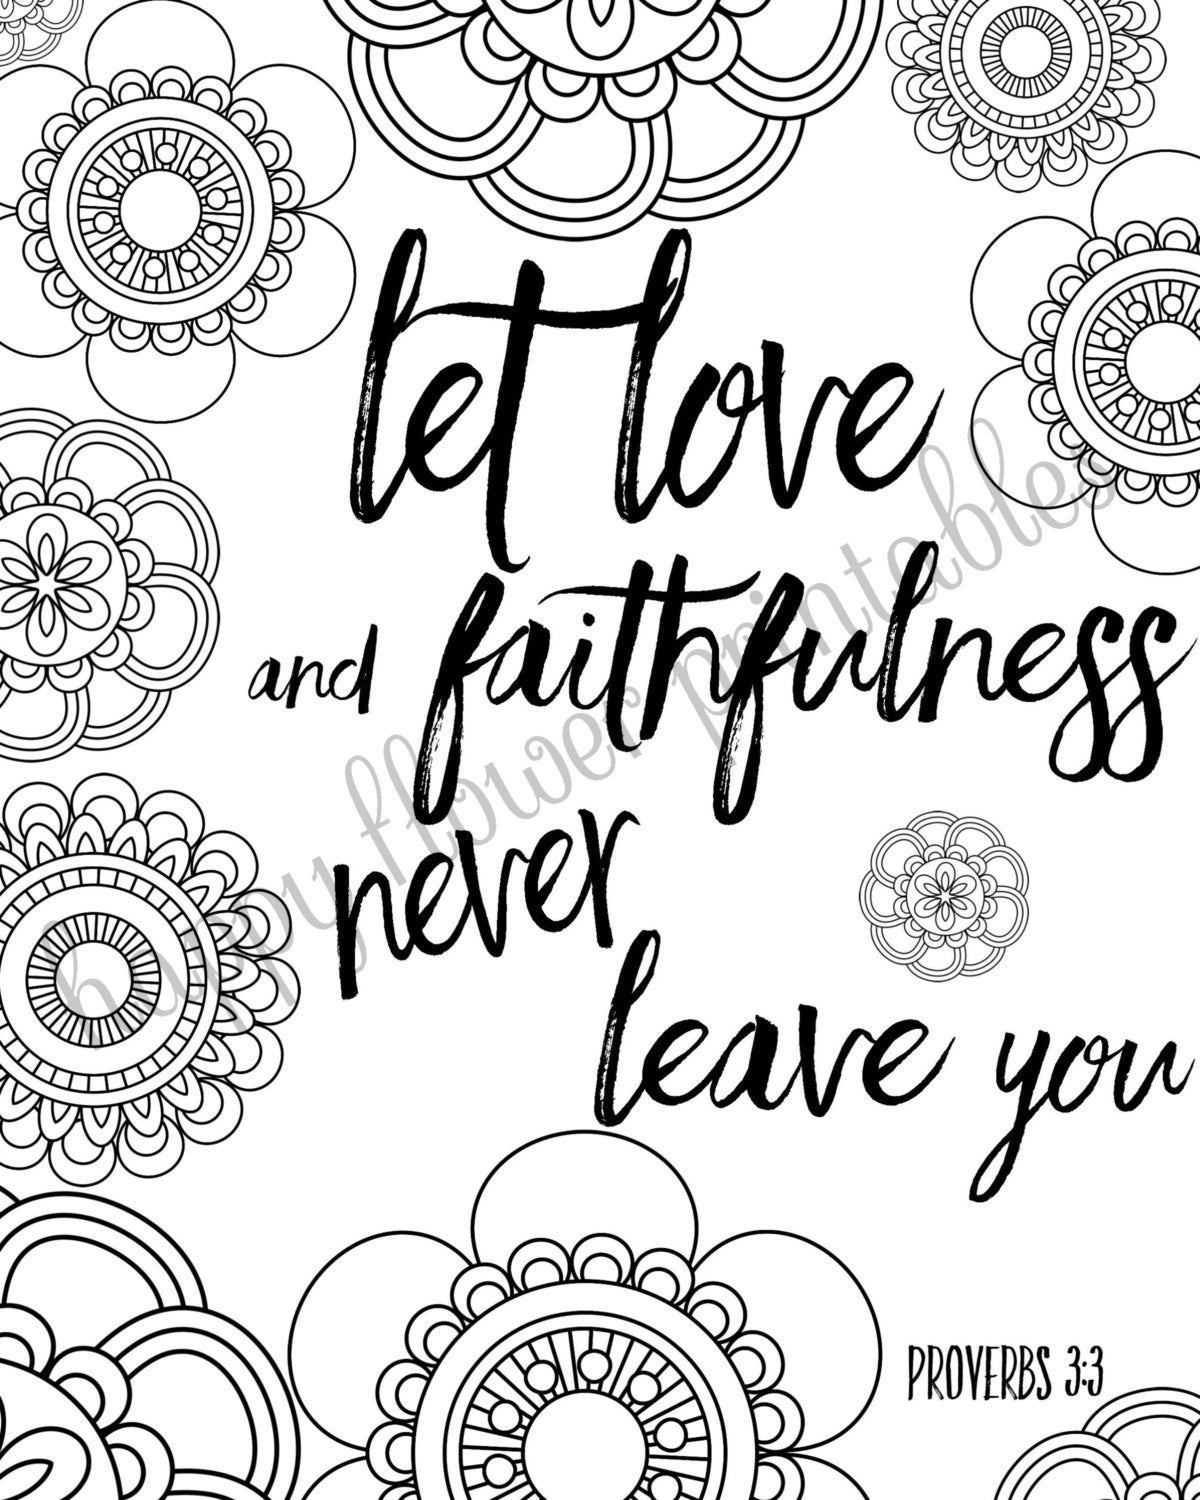 bible verse coloring sheets my cup overflows inspirational coloring pages bible sheets verse coloring